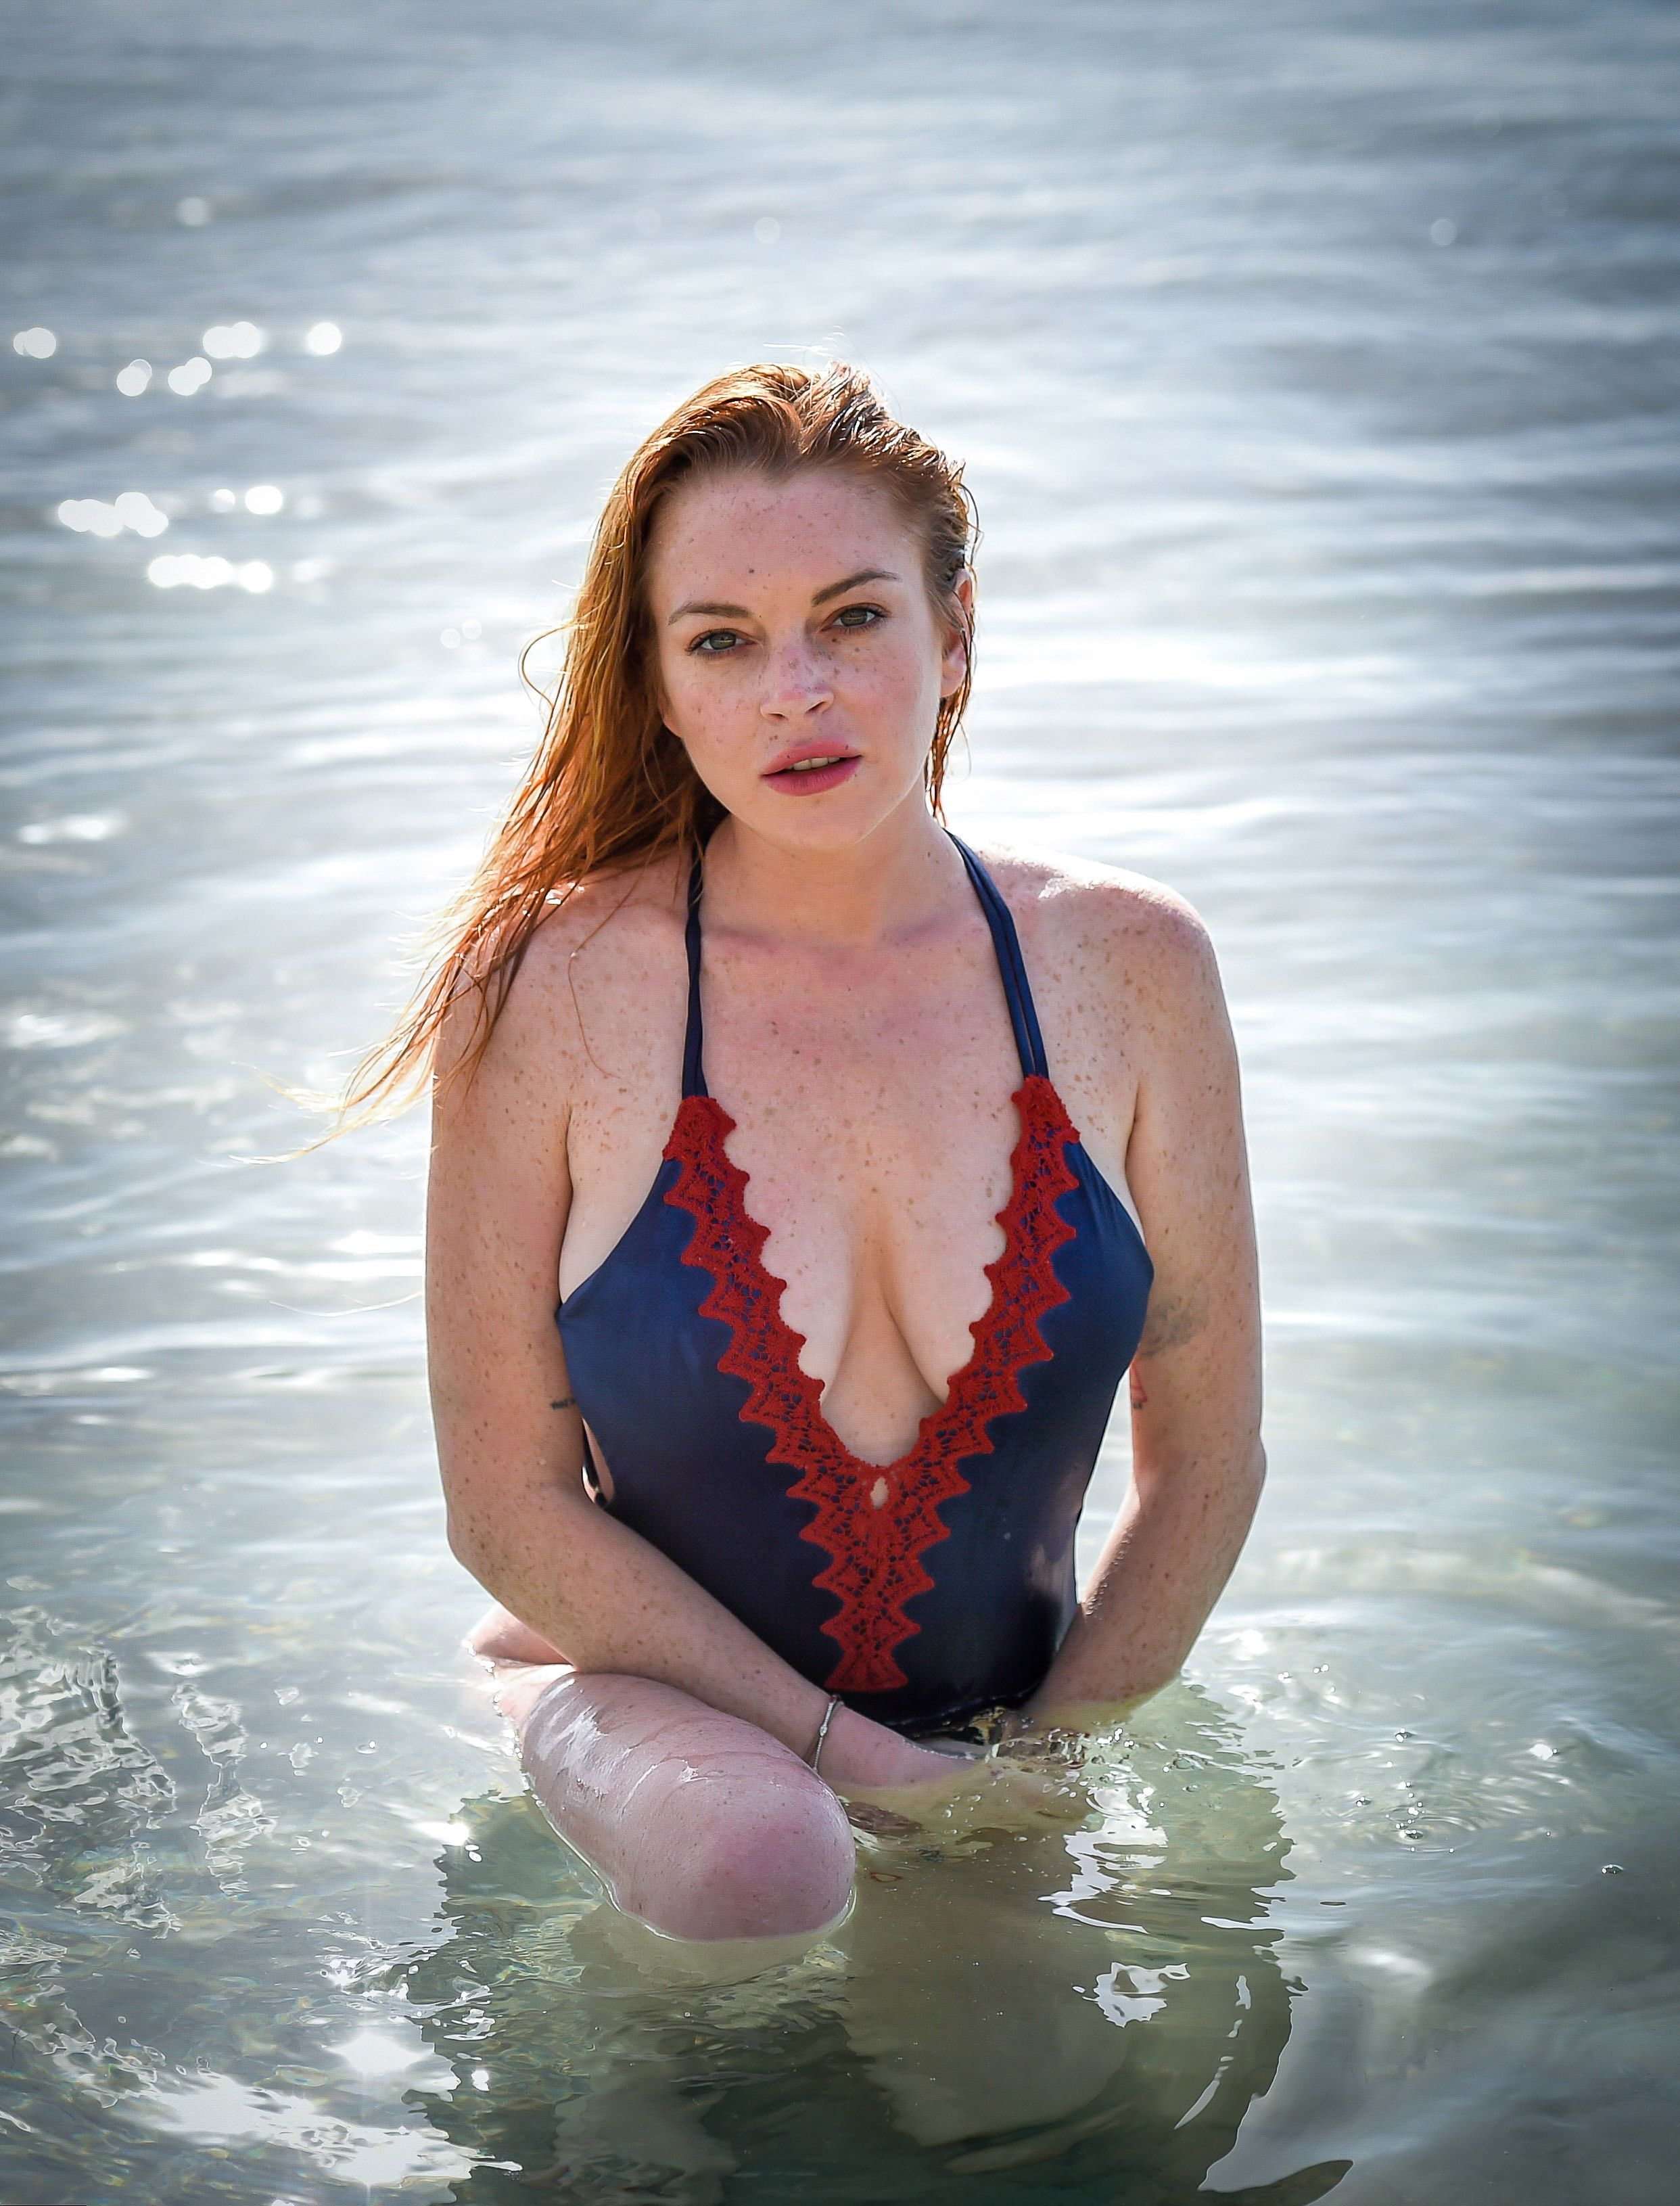 Lindsay-Lohan-in-a-Swimsuit-3